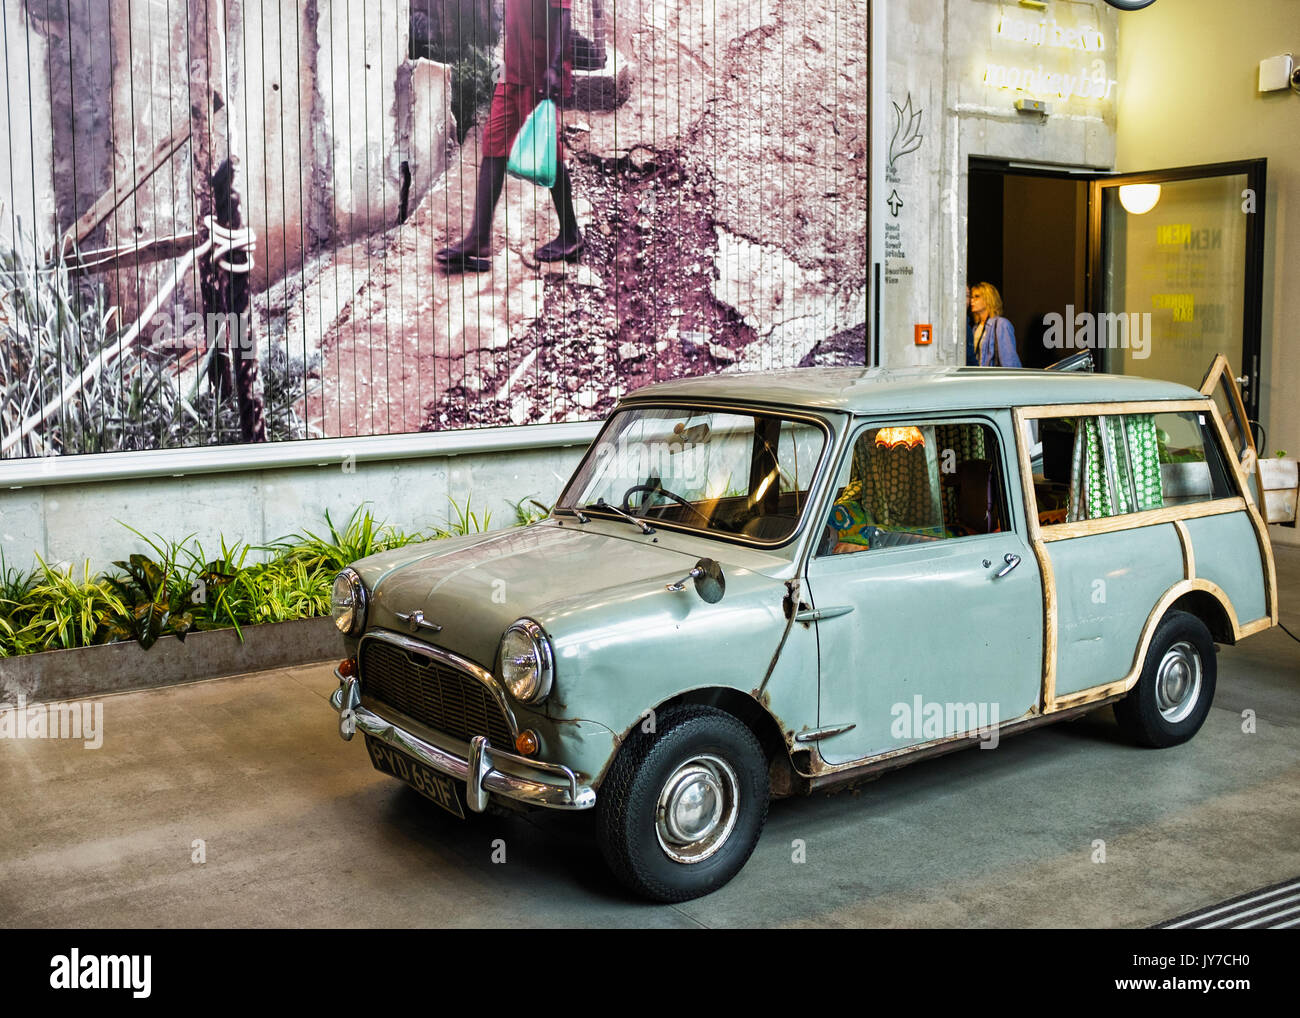 Berlin Charlottenburg.Classic Morris Mini Traveller, Austin Mini Countryman two-door estate car. Rusty automobile with curtains and lampshade - Stock Image